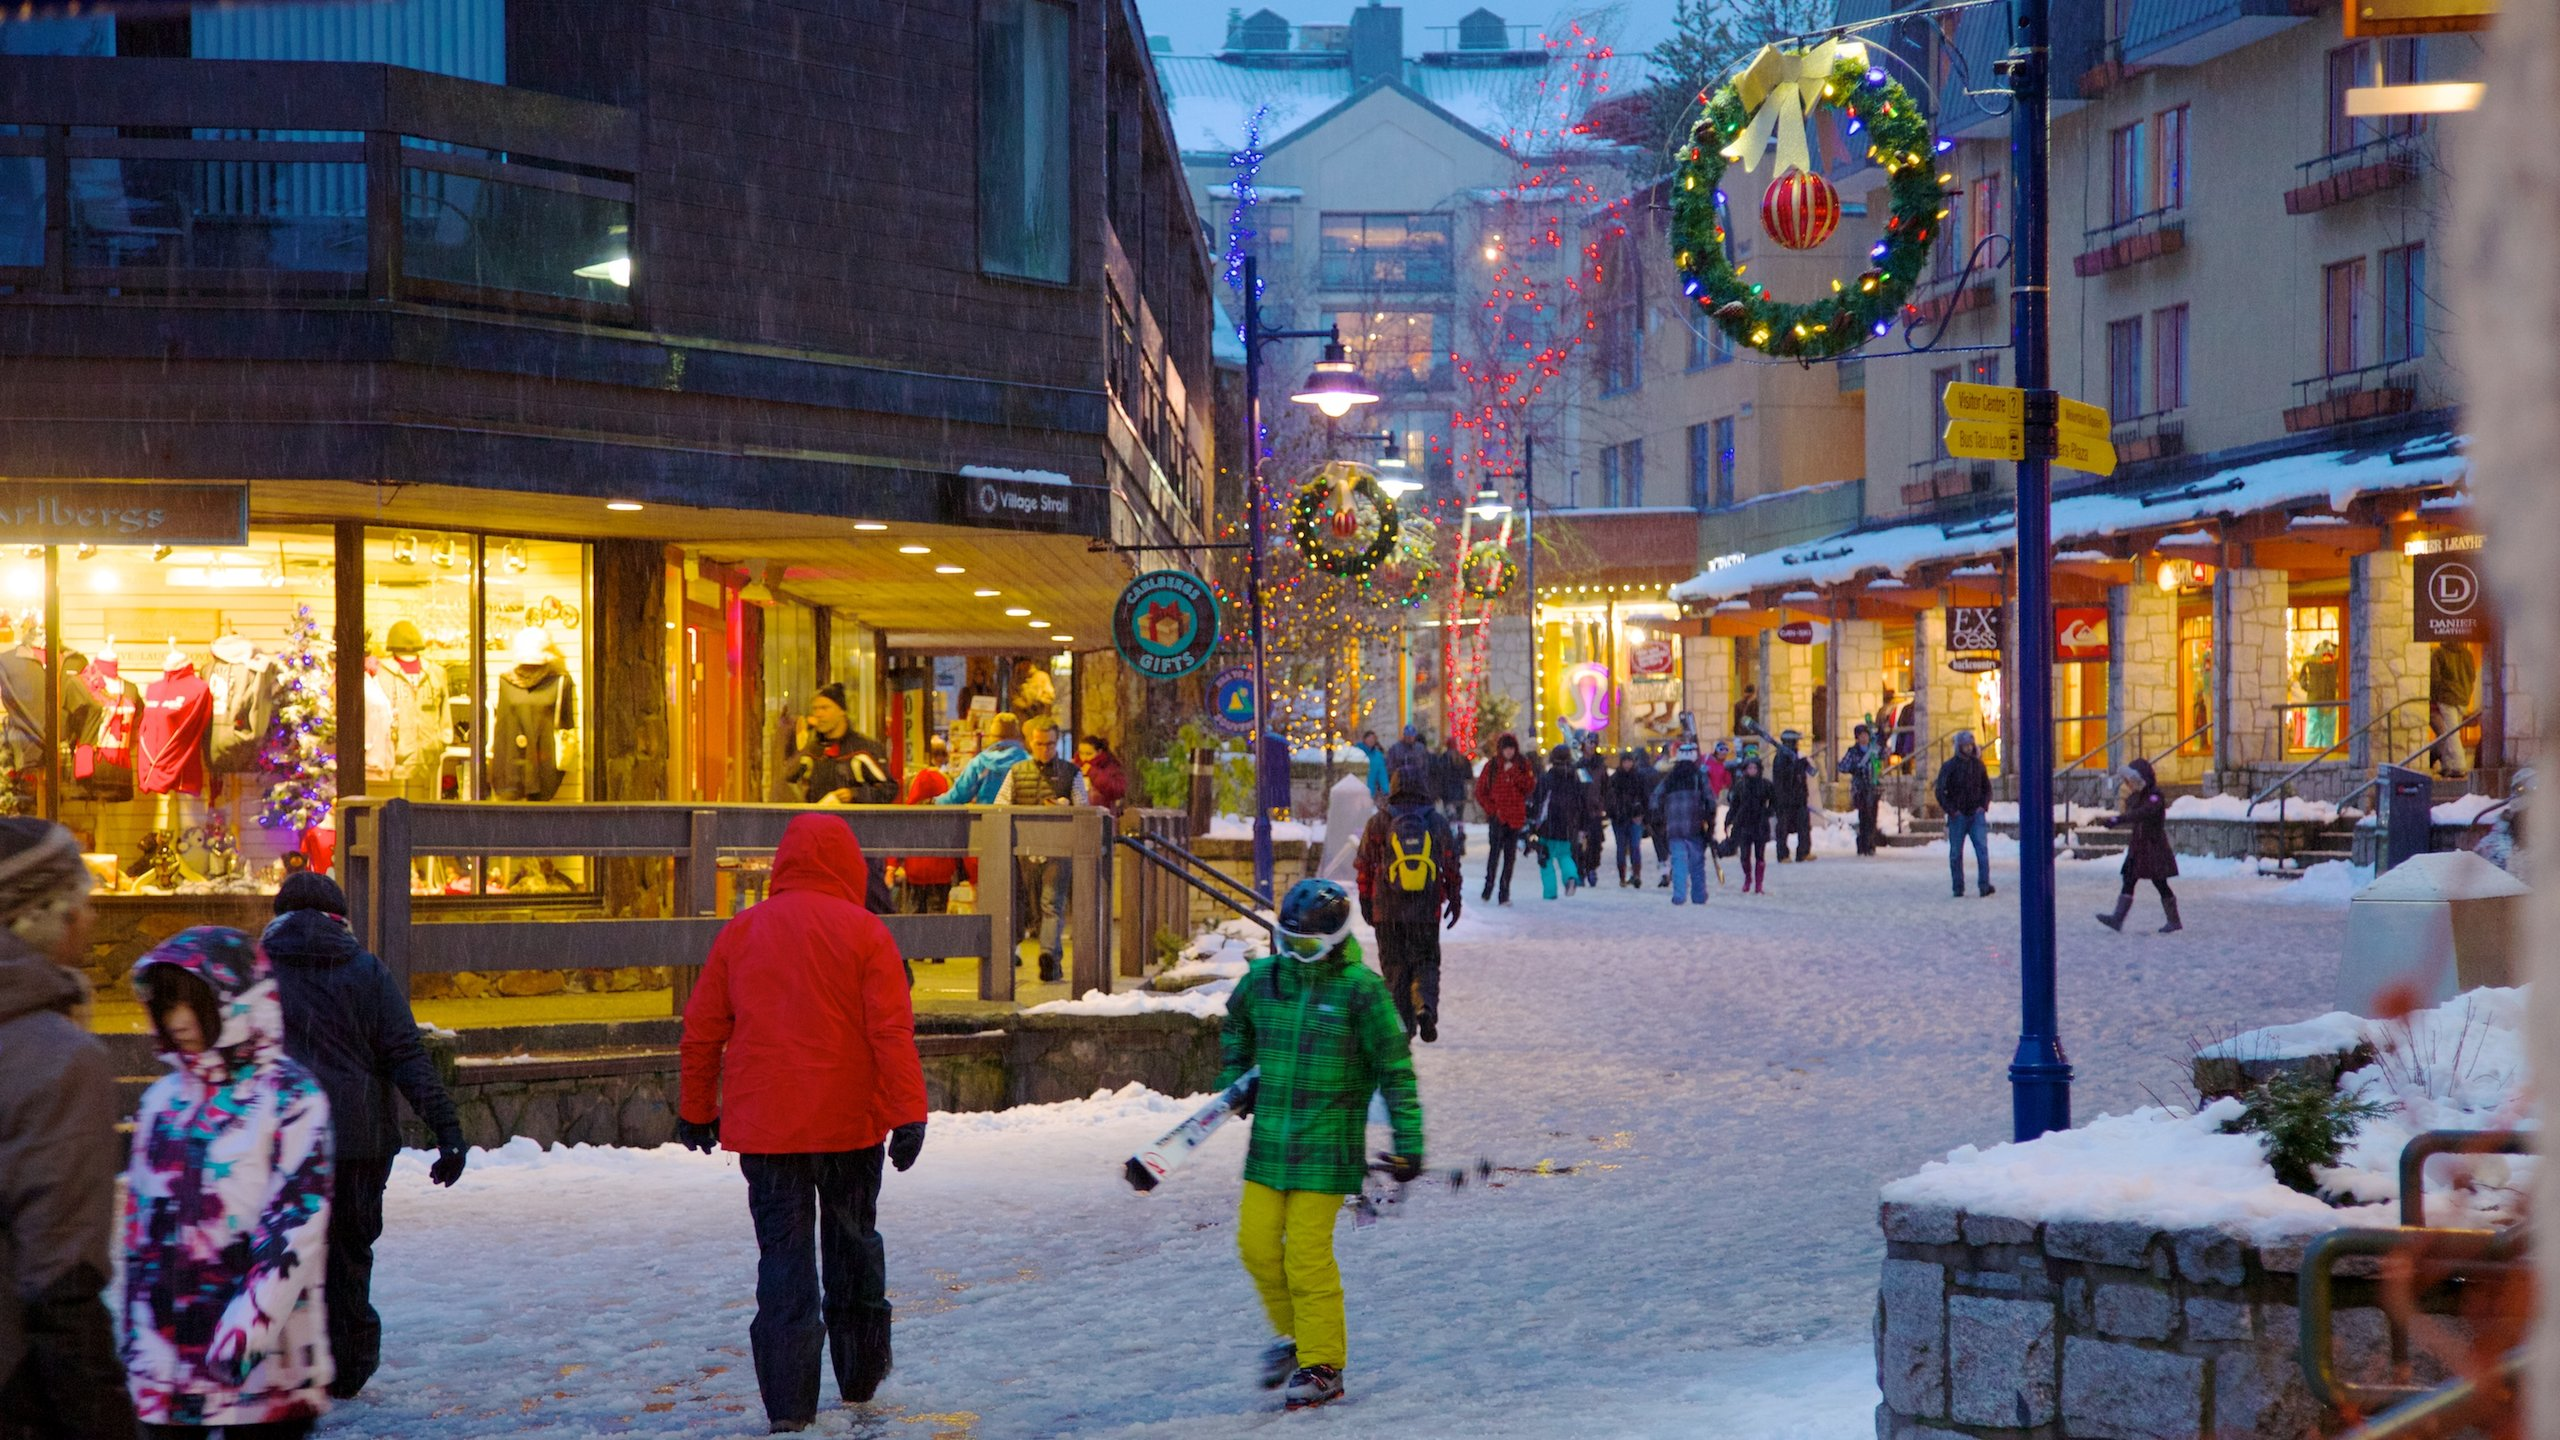 Whistler Ski Area featuring a small town or village, street scenes and snow